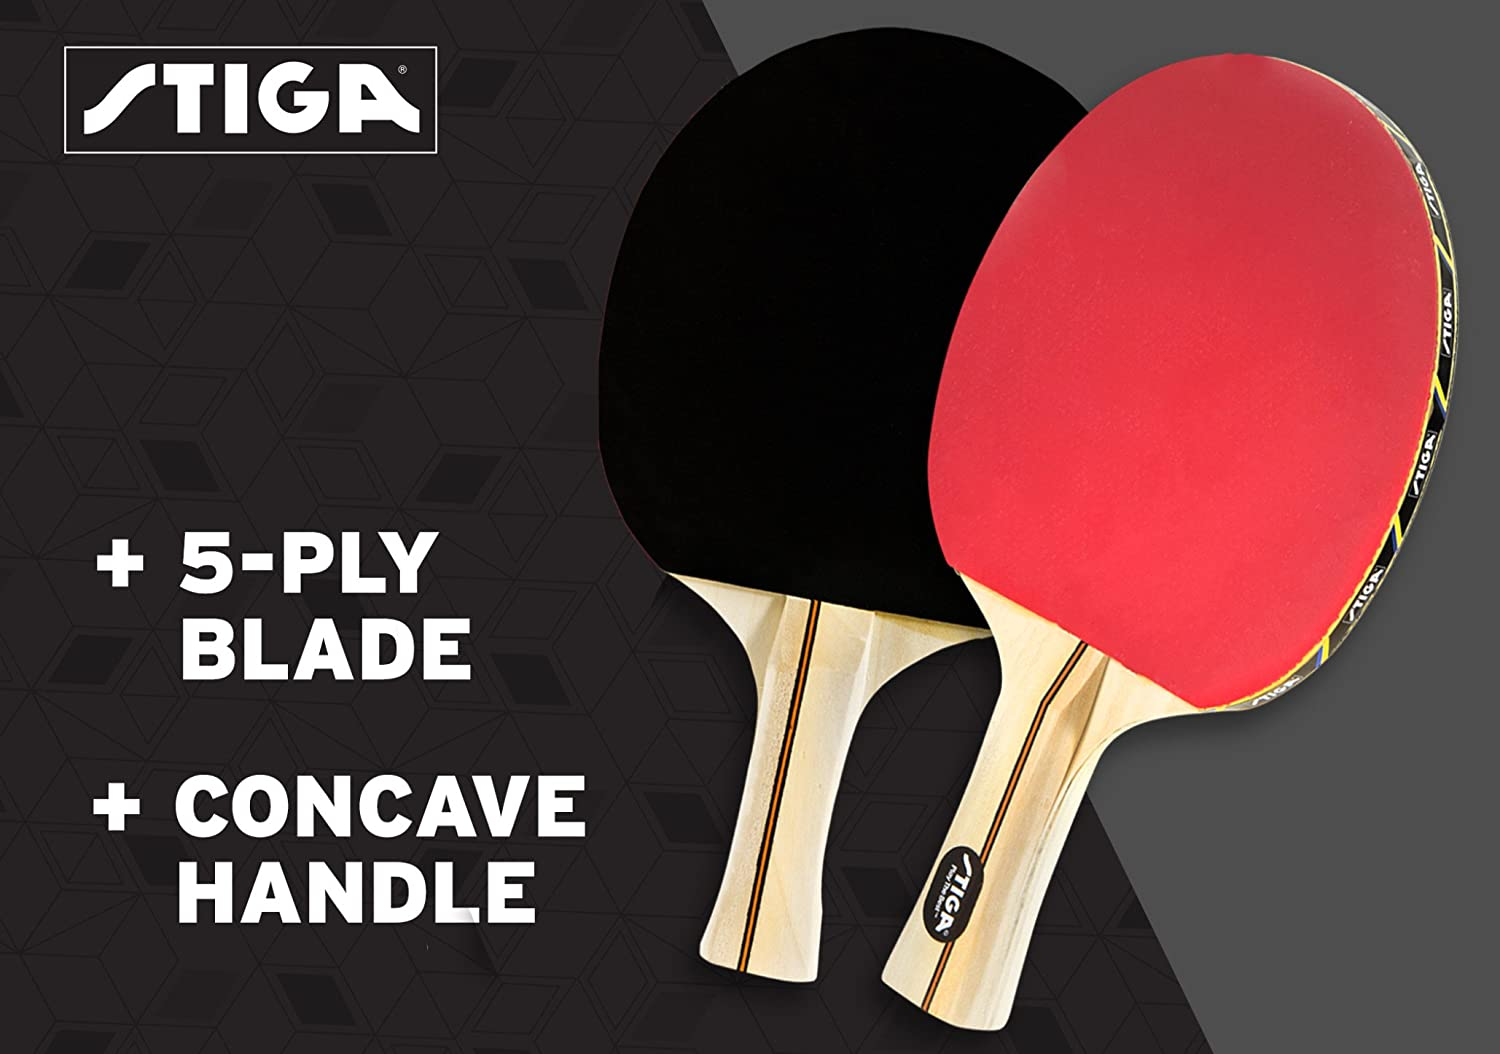 STIGA Performance 4-Player Table Tennis Racket Set with Inverted Rubber for Increased Ball Control and Added Spin T1364